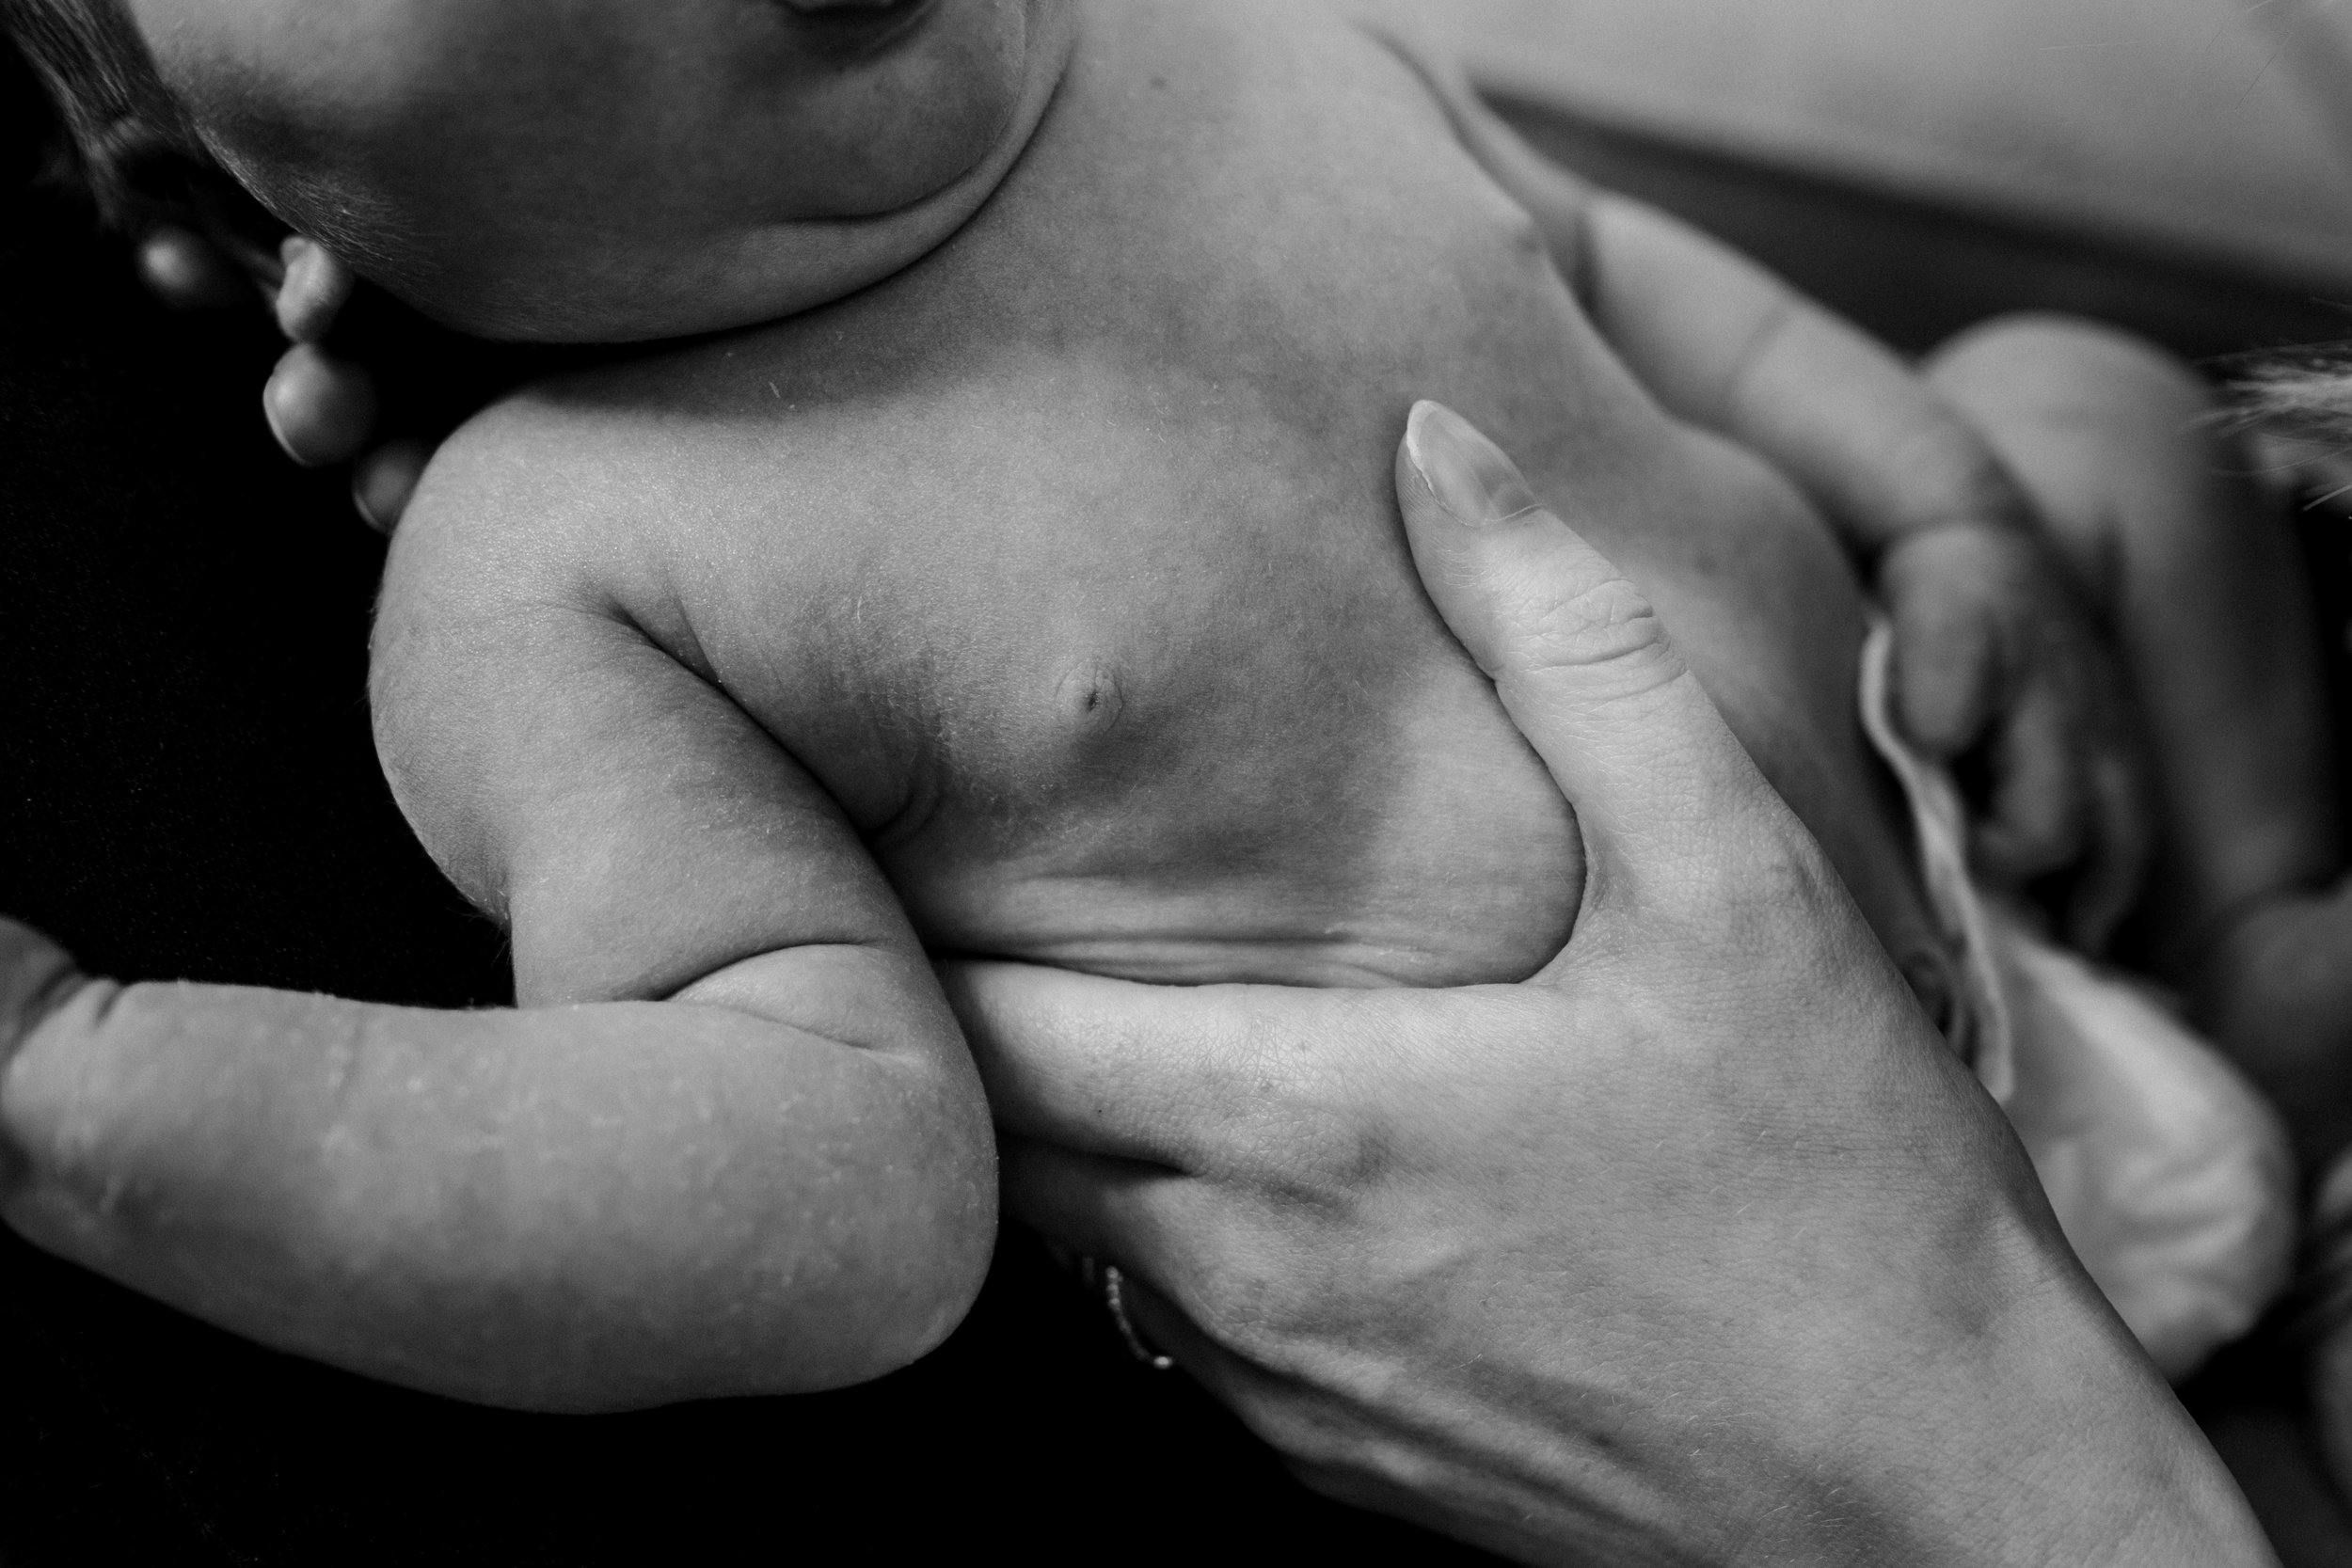 A close up shot of a mother's hands on her baby.